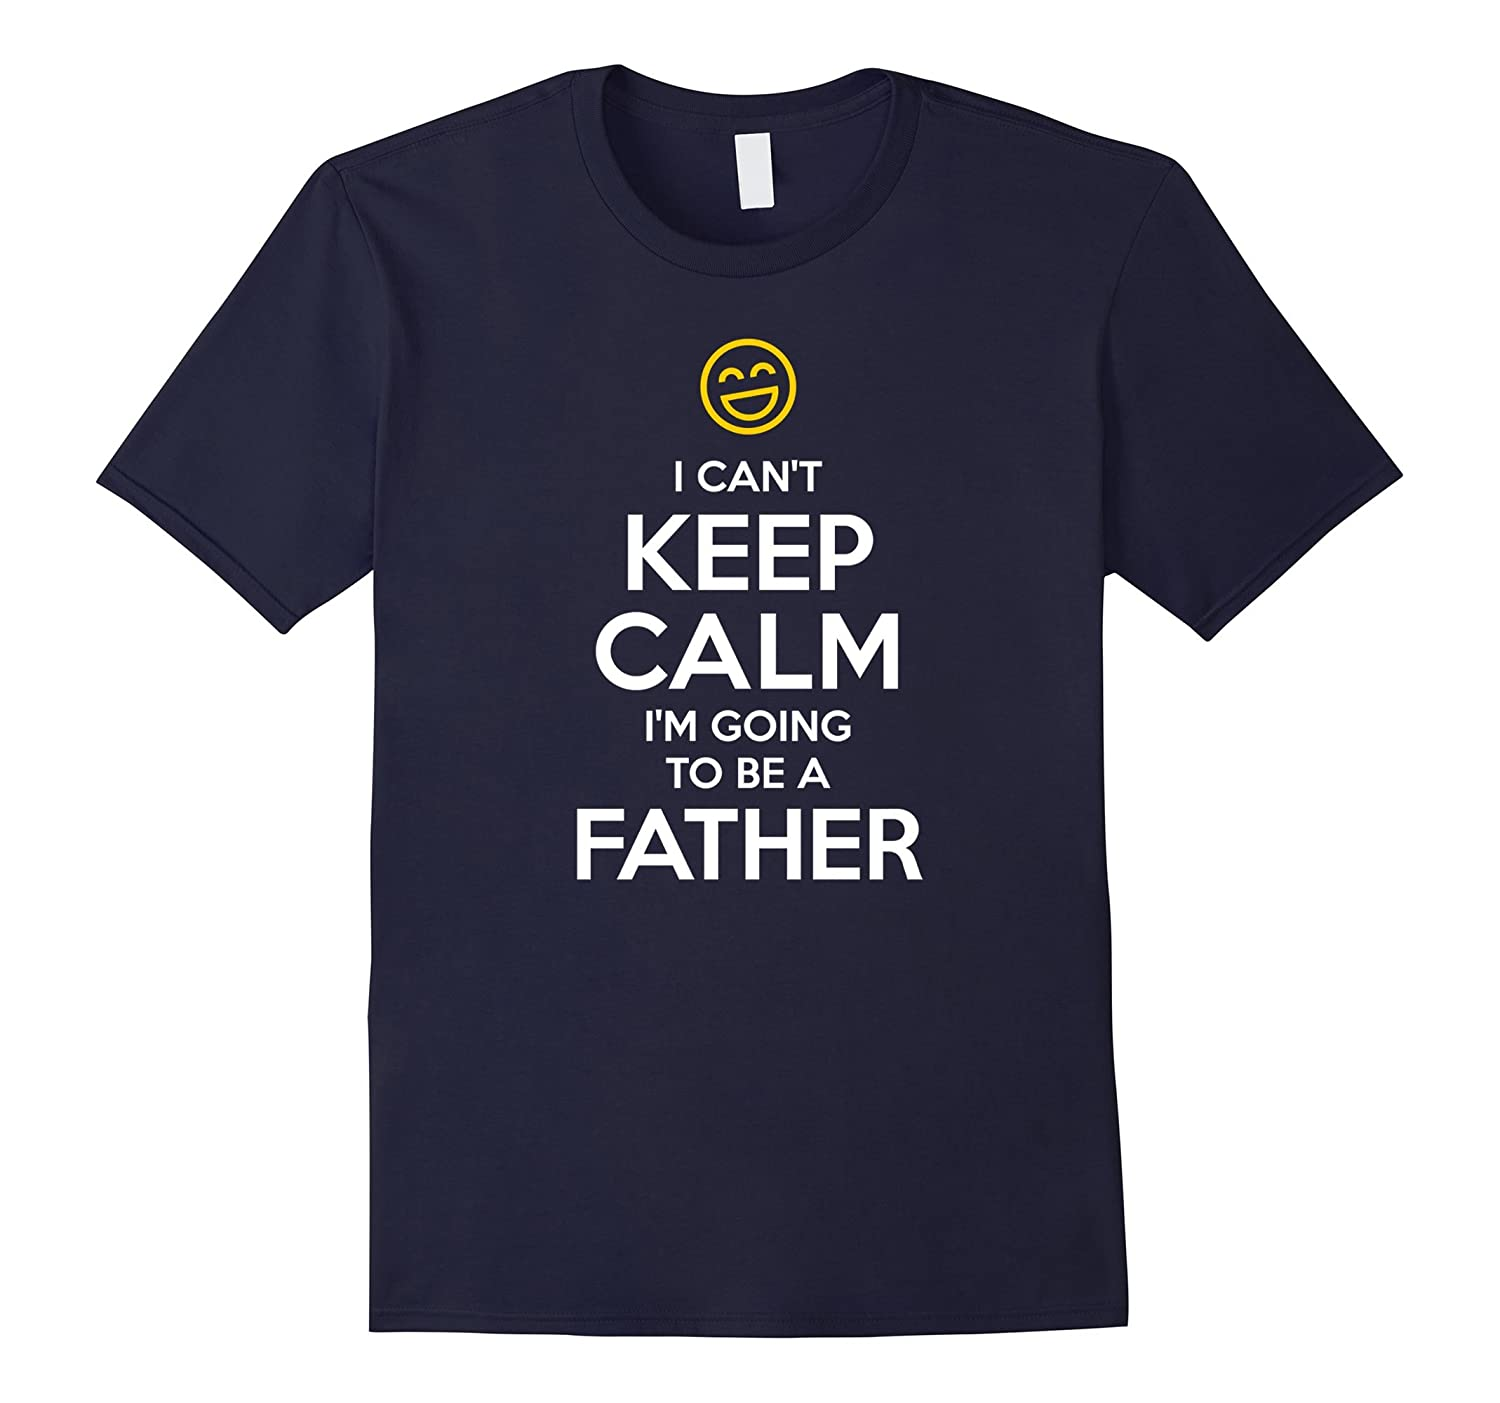 'I Can't Keep Calm, I'm Going To Be A Father' - T-Shirt-ANZ